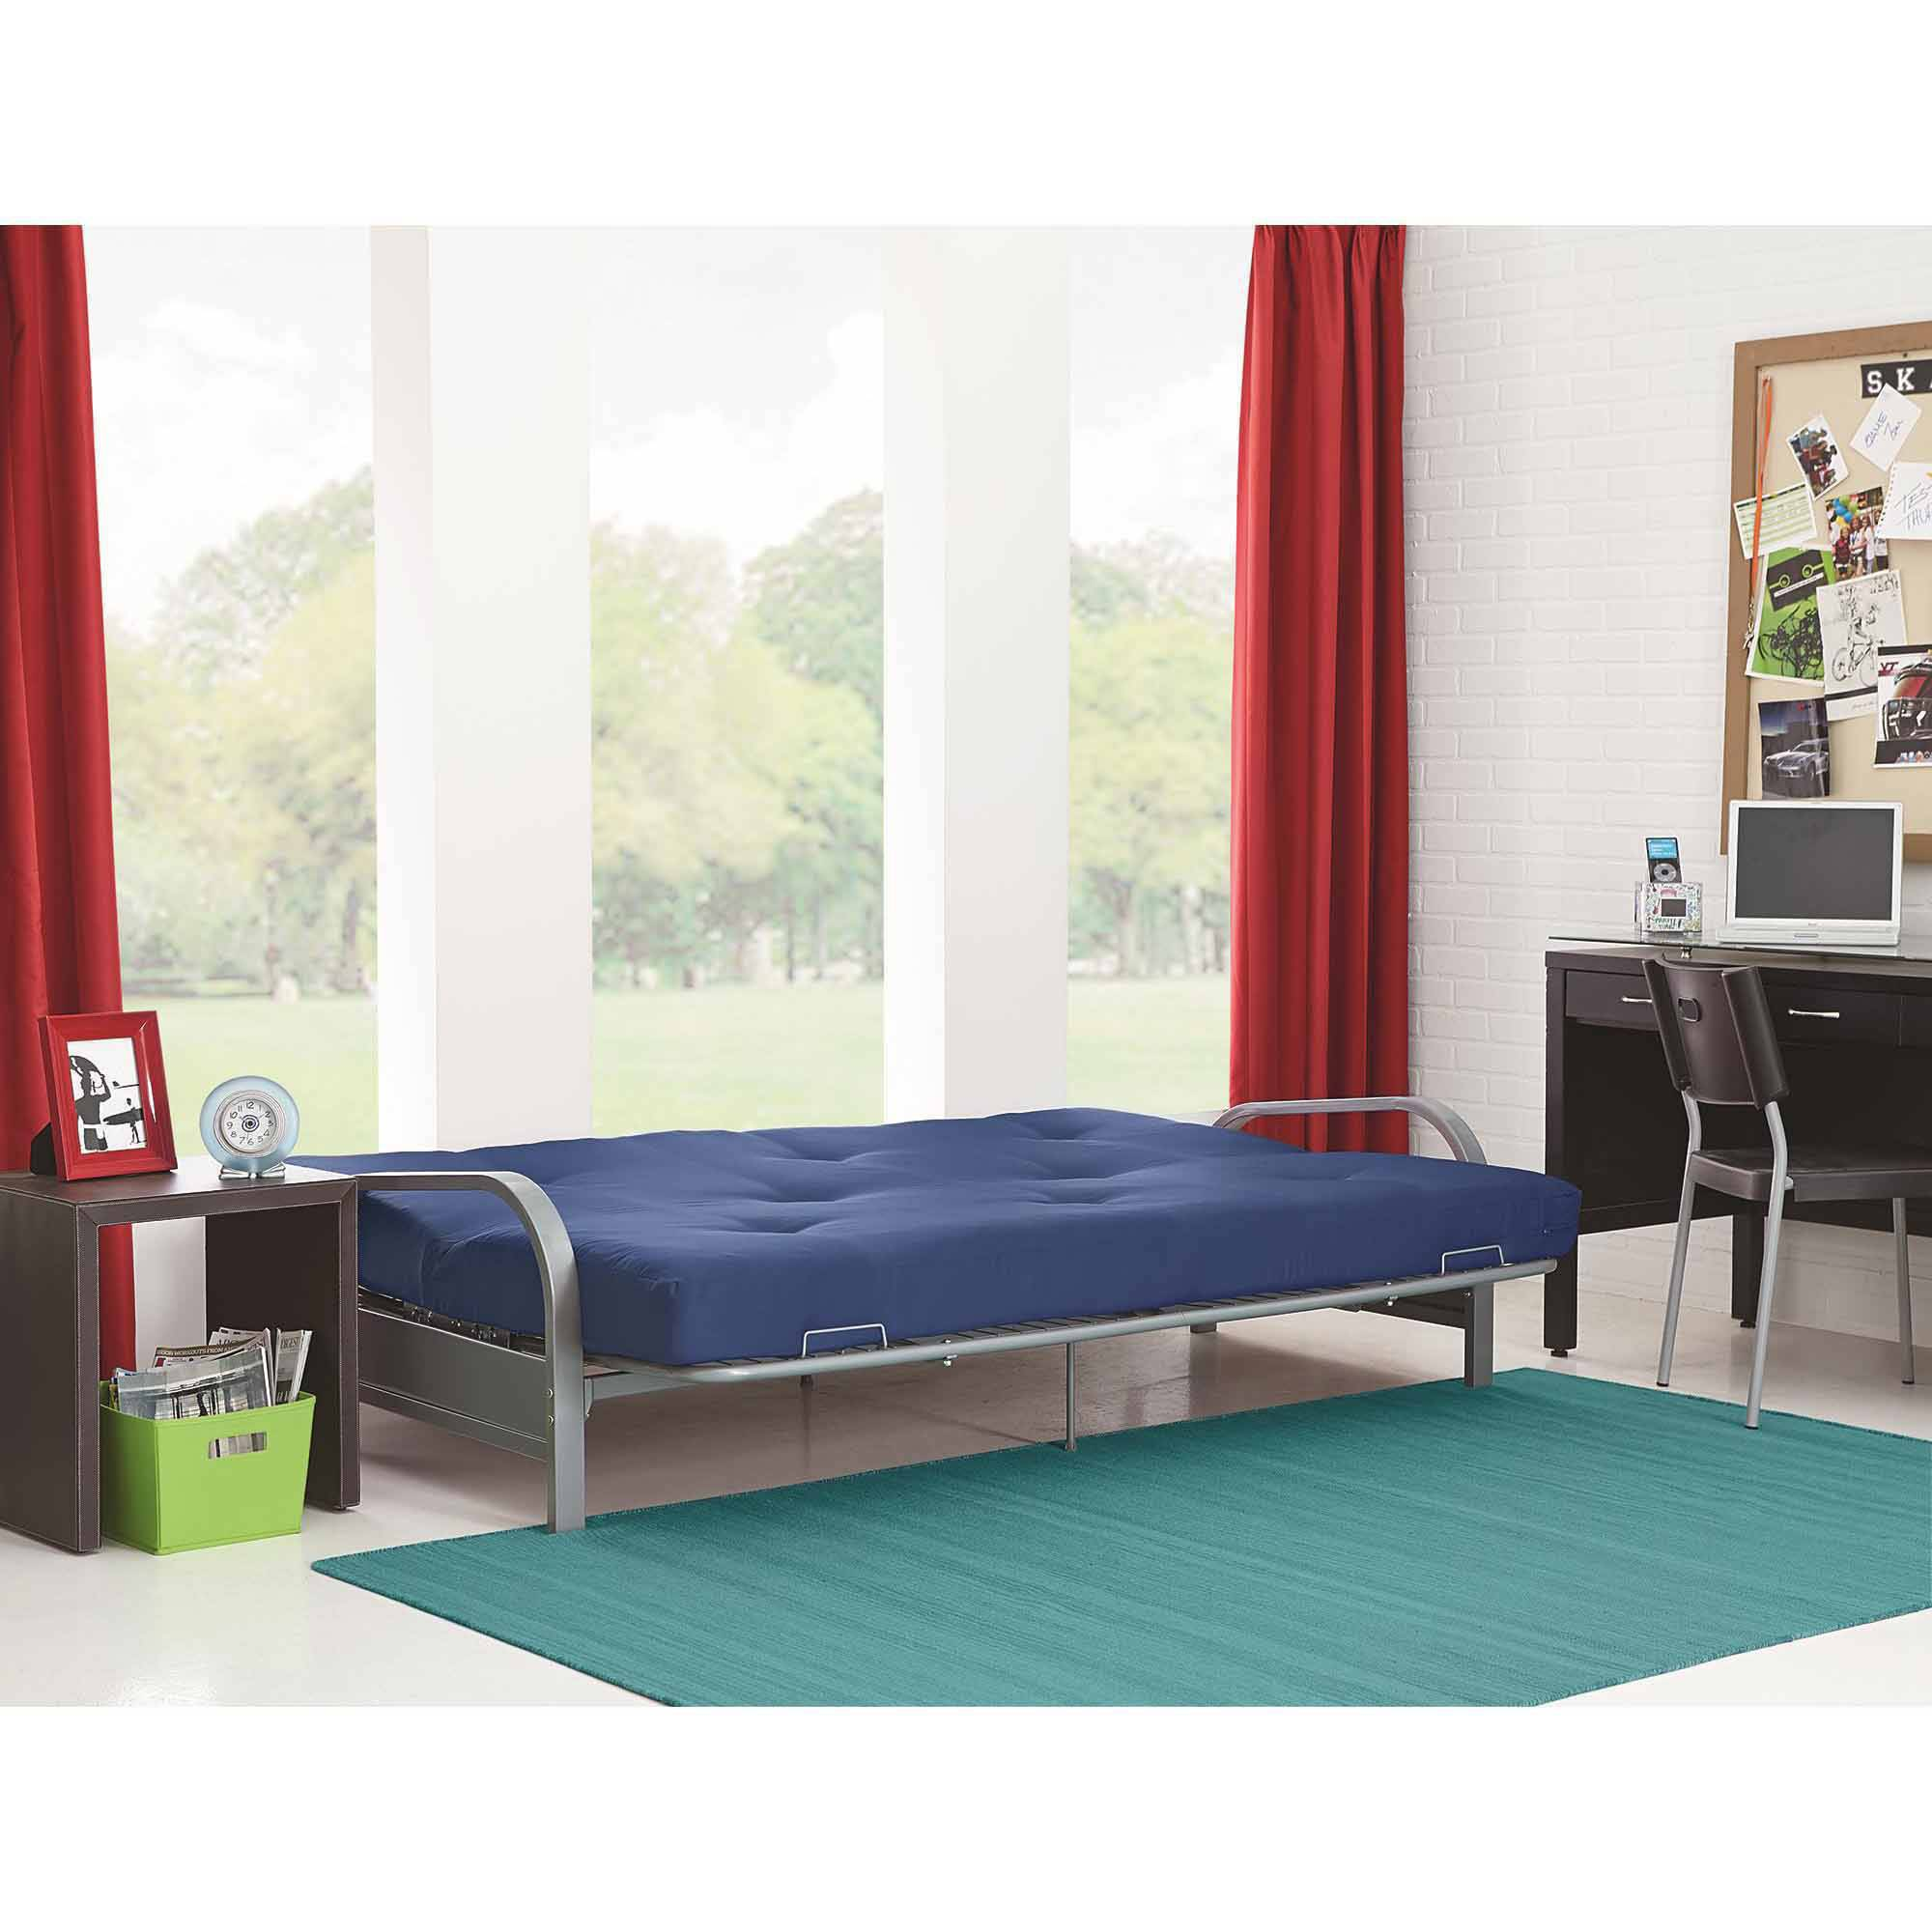 Full Size Futon With Mattress Frame Bed Couch Dorm